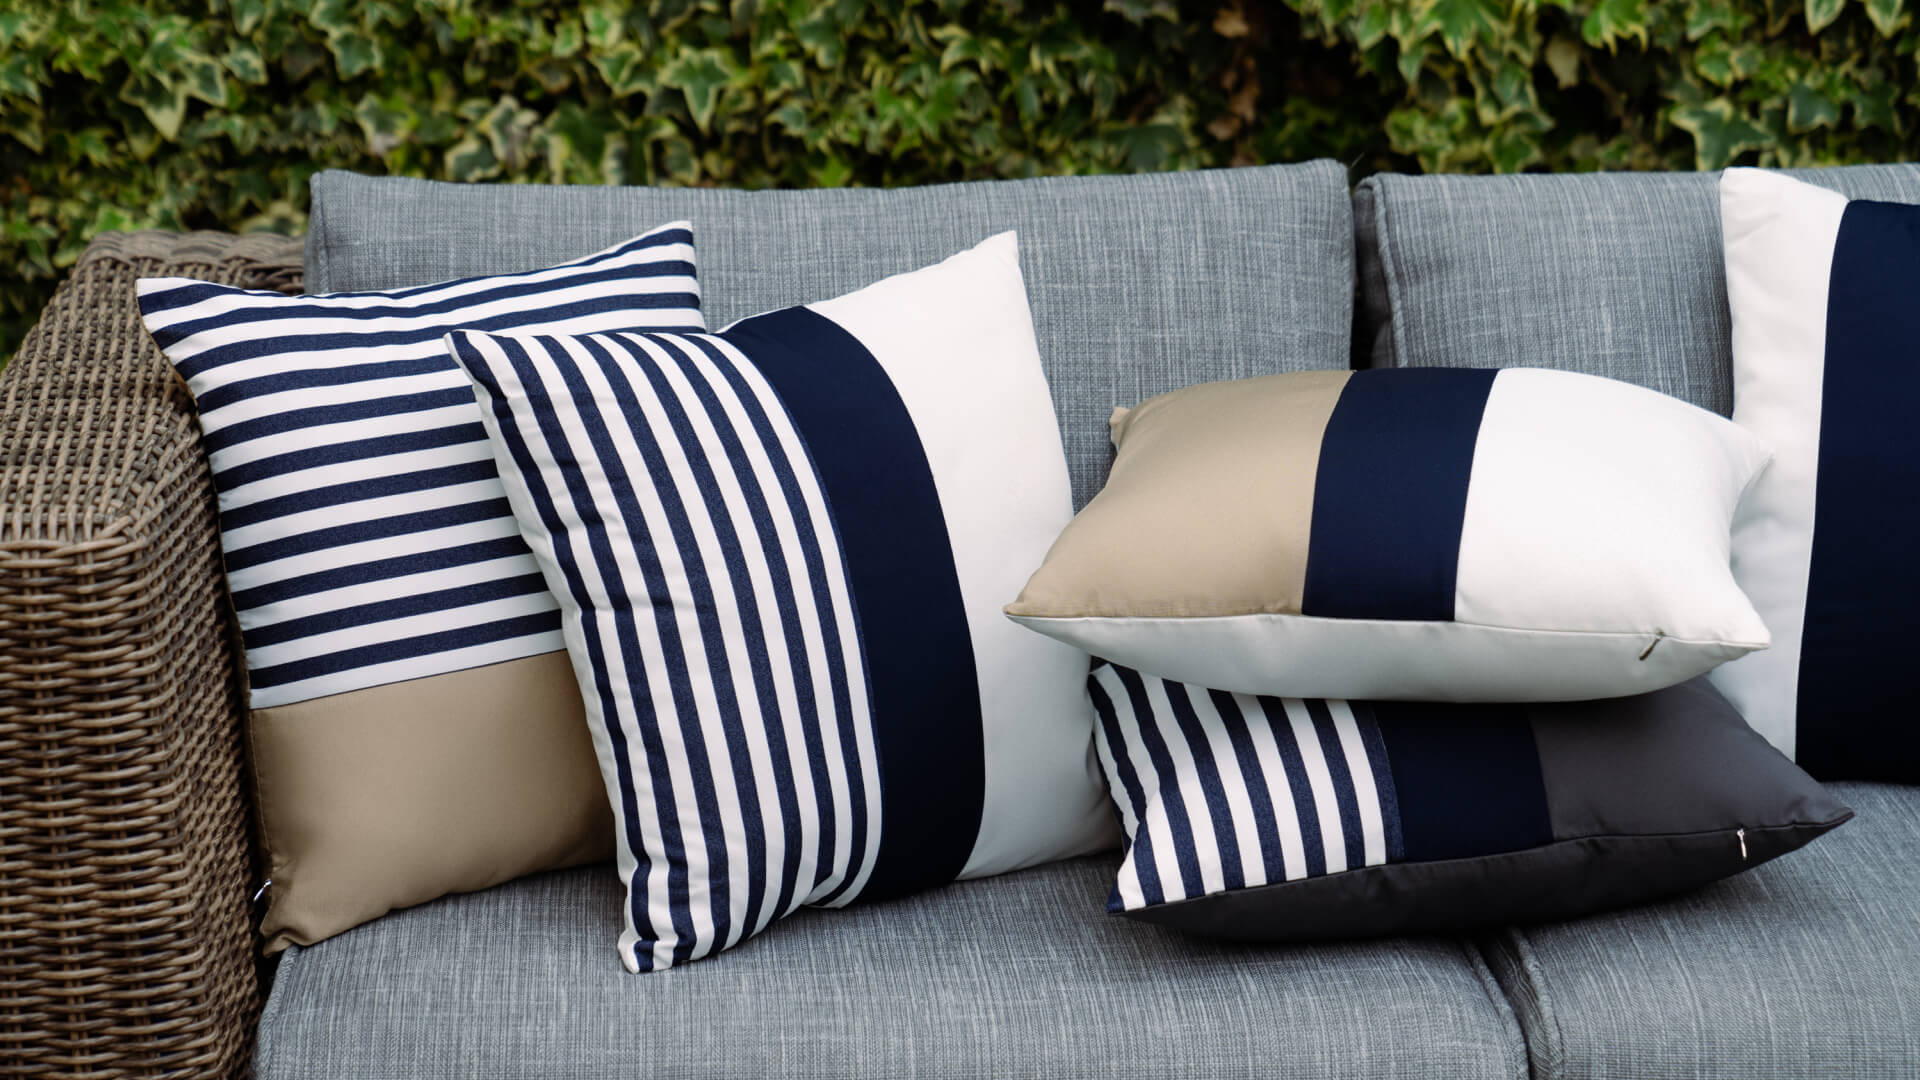 How to Clean Your Outdoor Throw Pillows